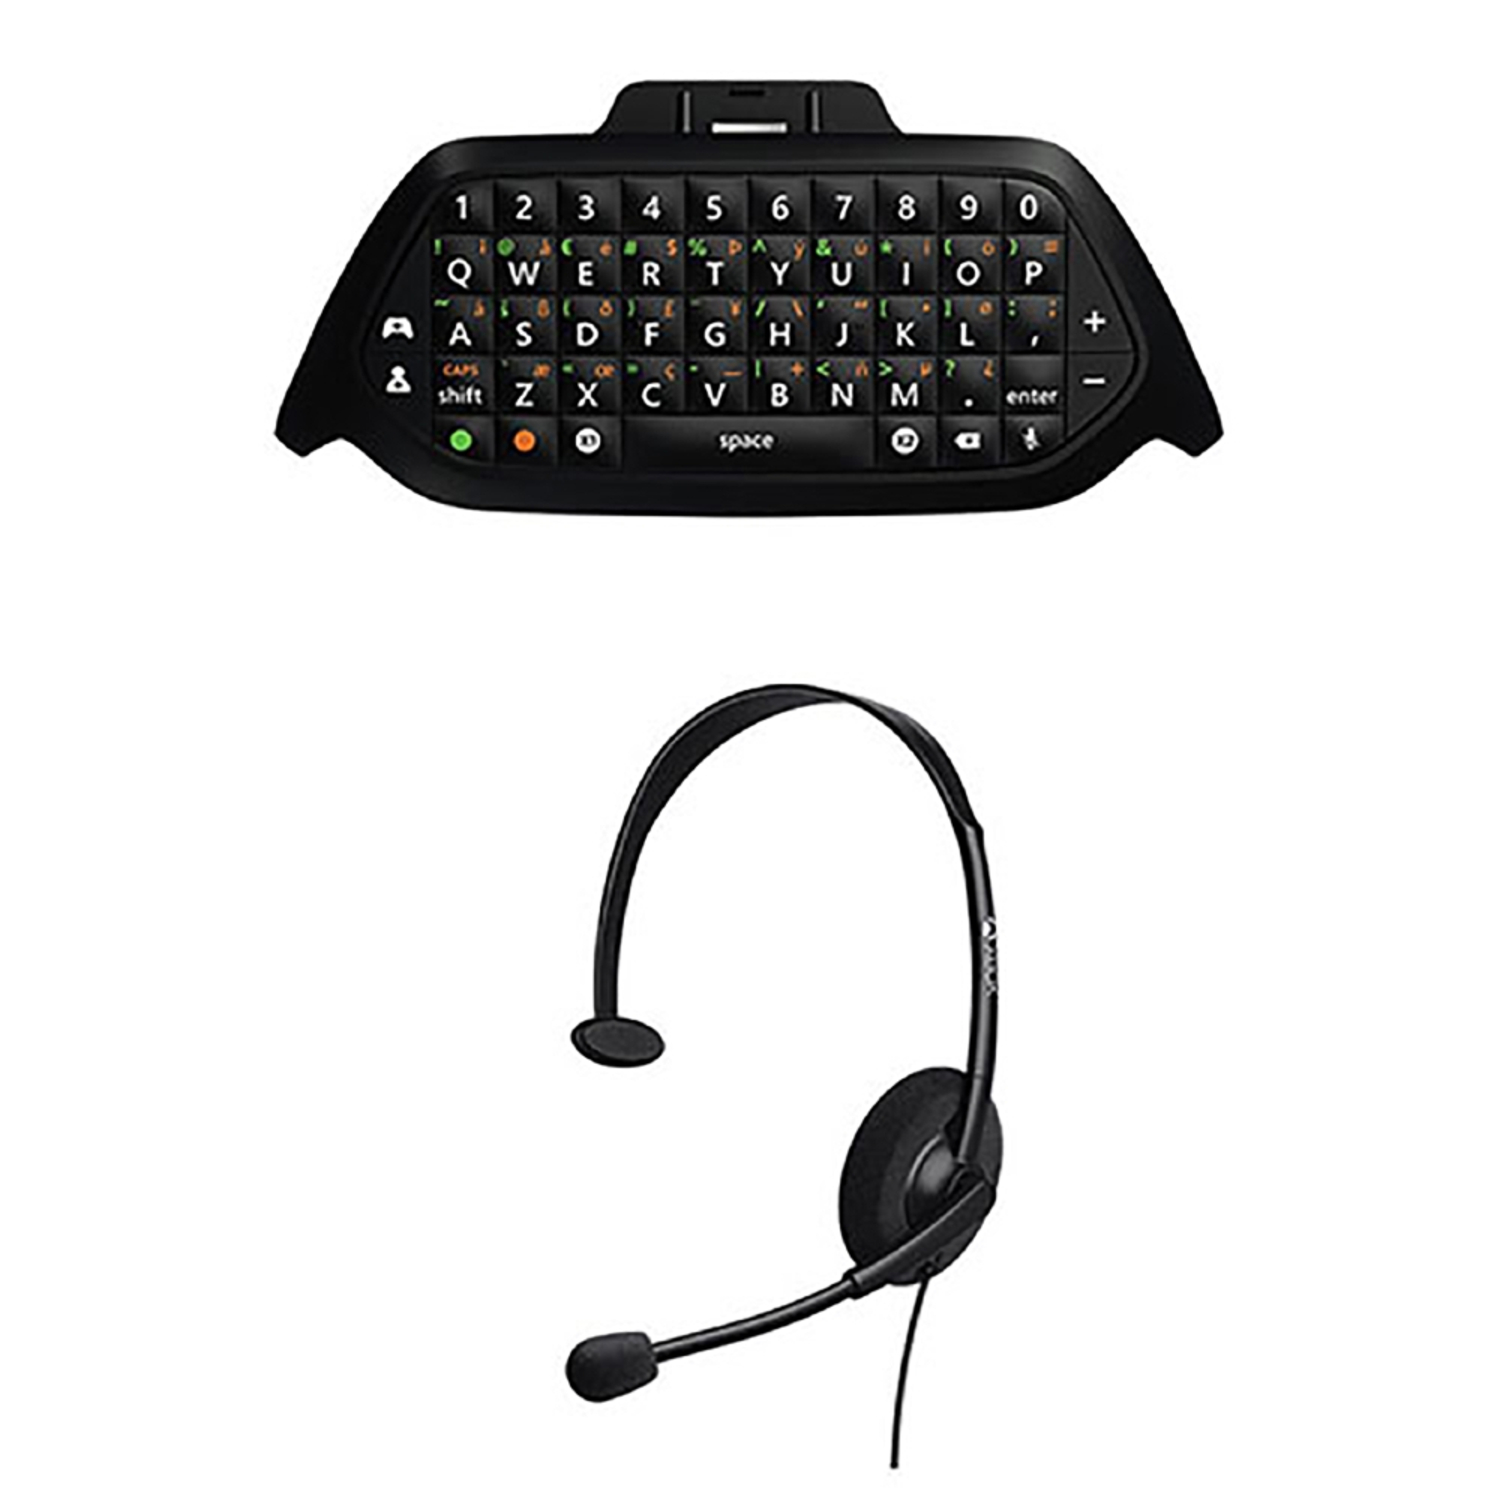 hight resolution of microsoft wired headset chat pad keypad for xbox one gaming online game black walmart com